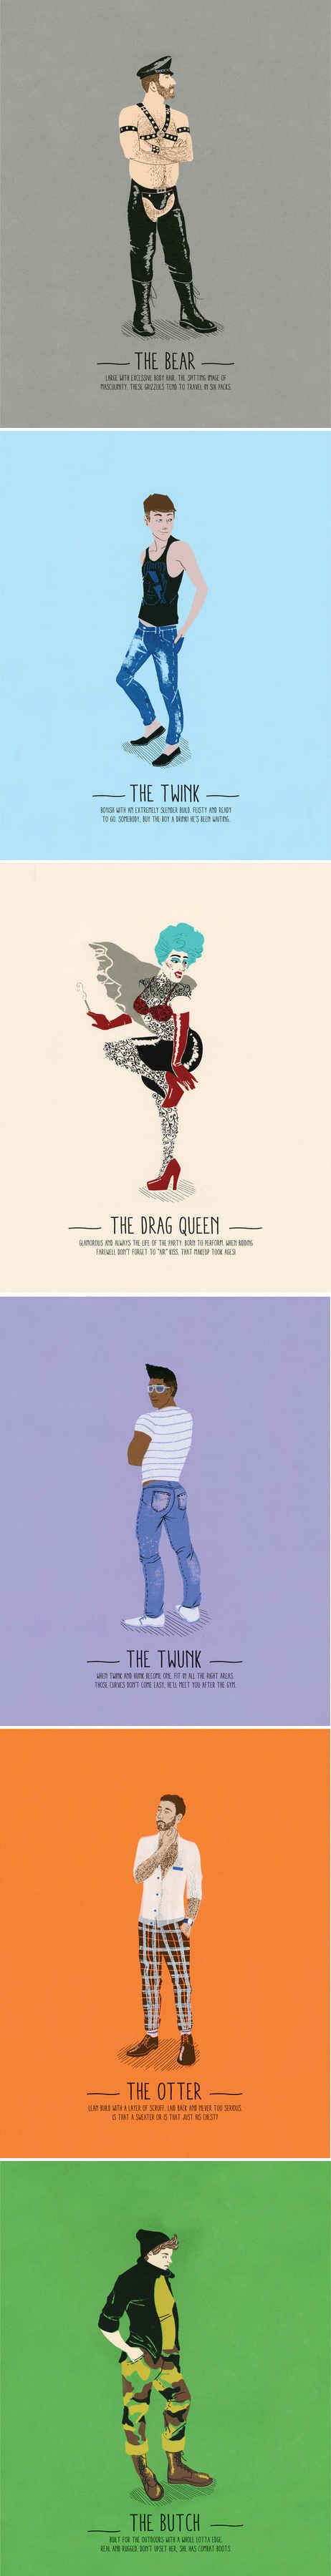 """A Guide to Gay Stereotypes"" Poster Series 